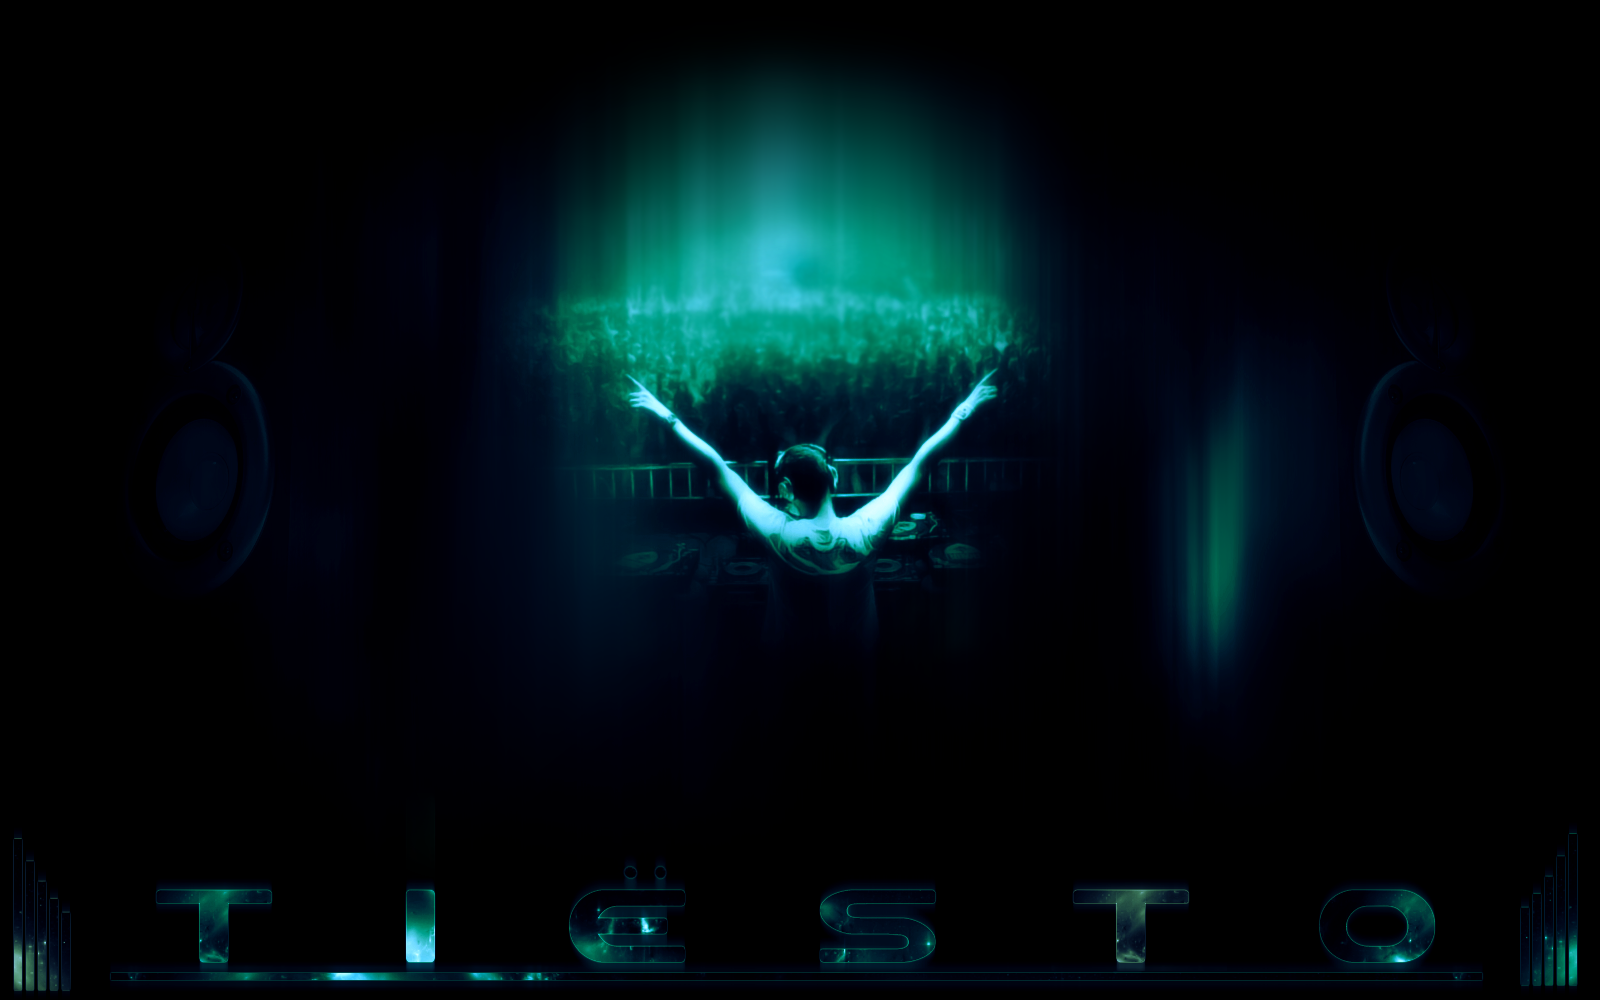 Tiesto Wallpaper 29645 Hd Wallpapers Background 1600x1000